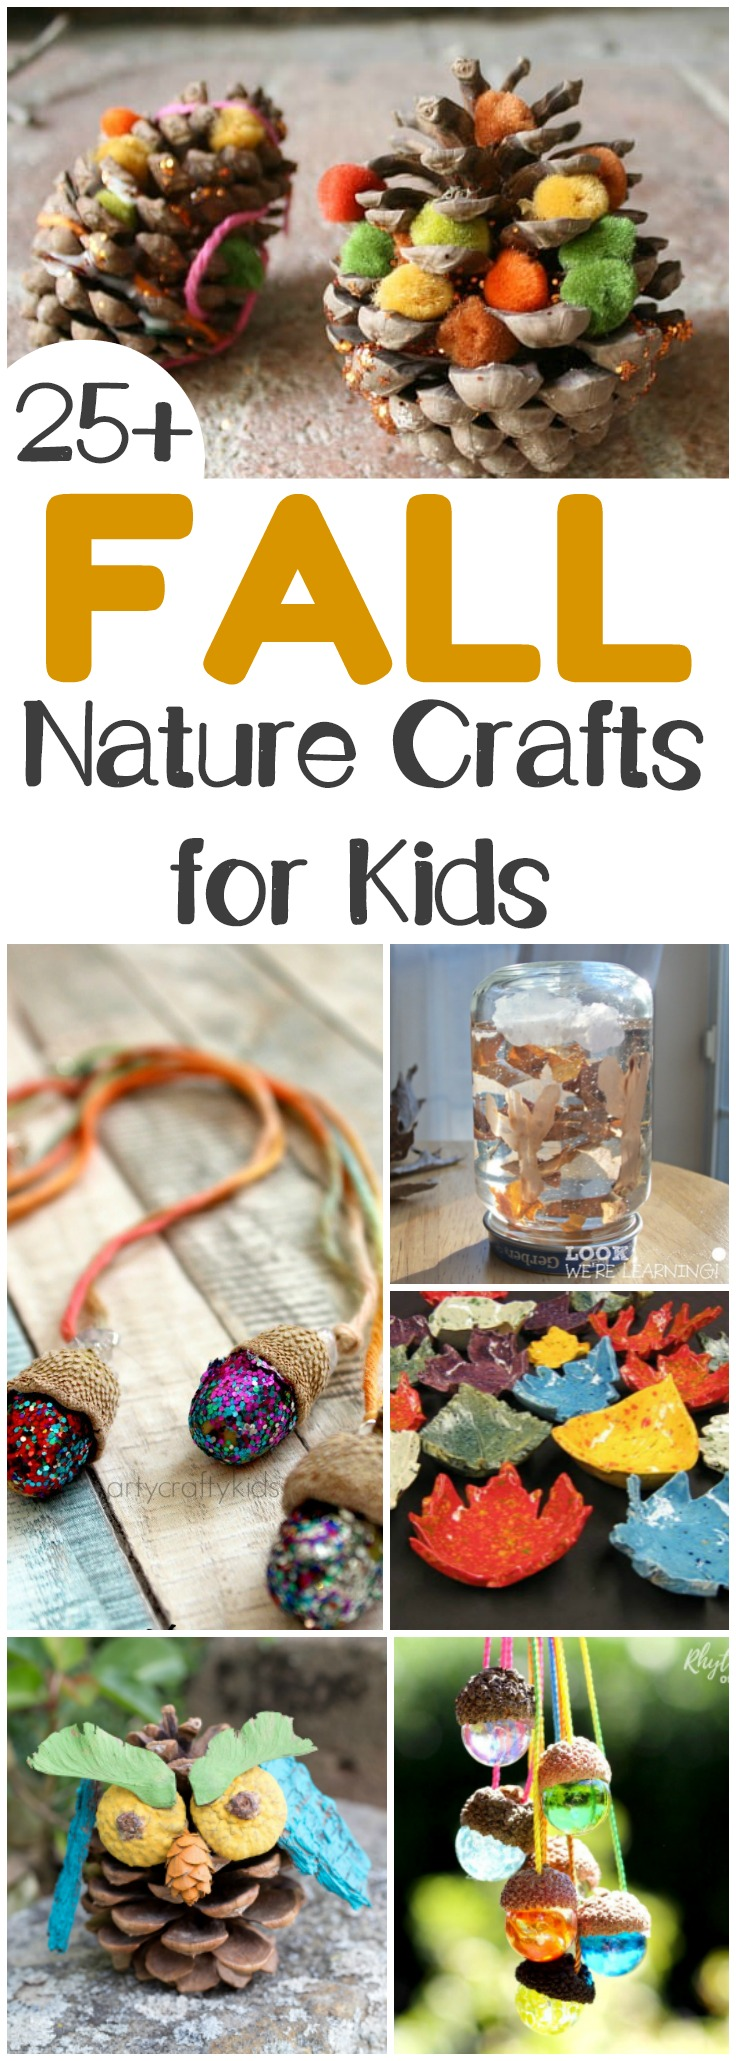 Get outside with the little ones this fall and gather up natural materials to make these lovely fall nature crafts!